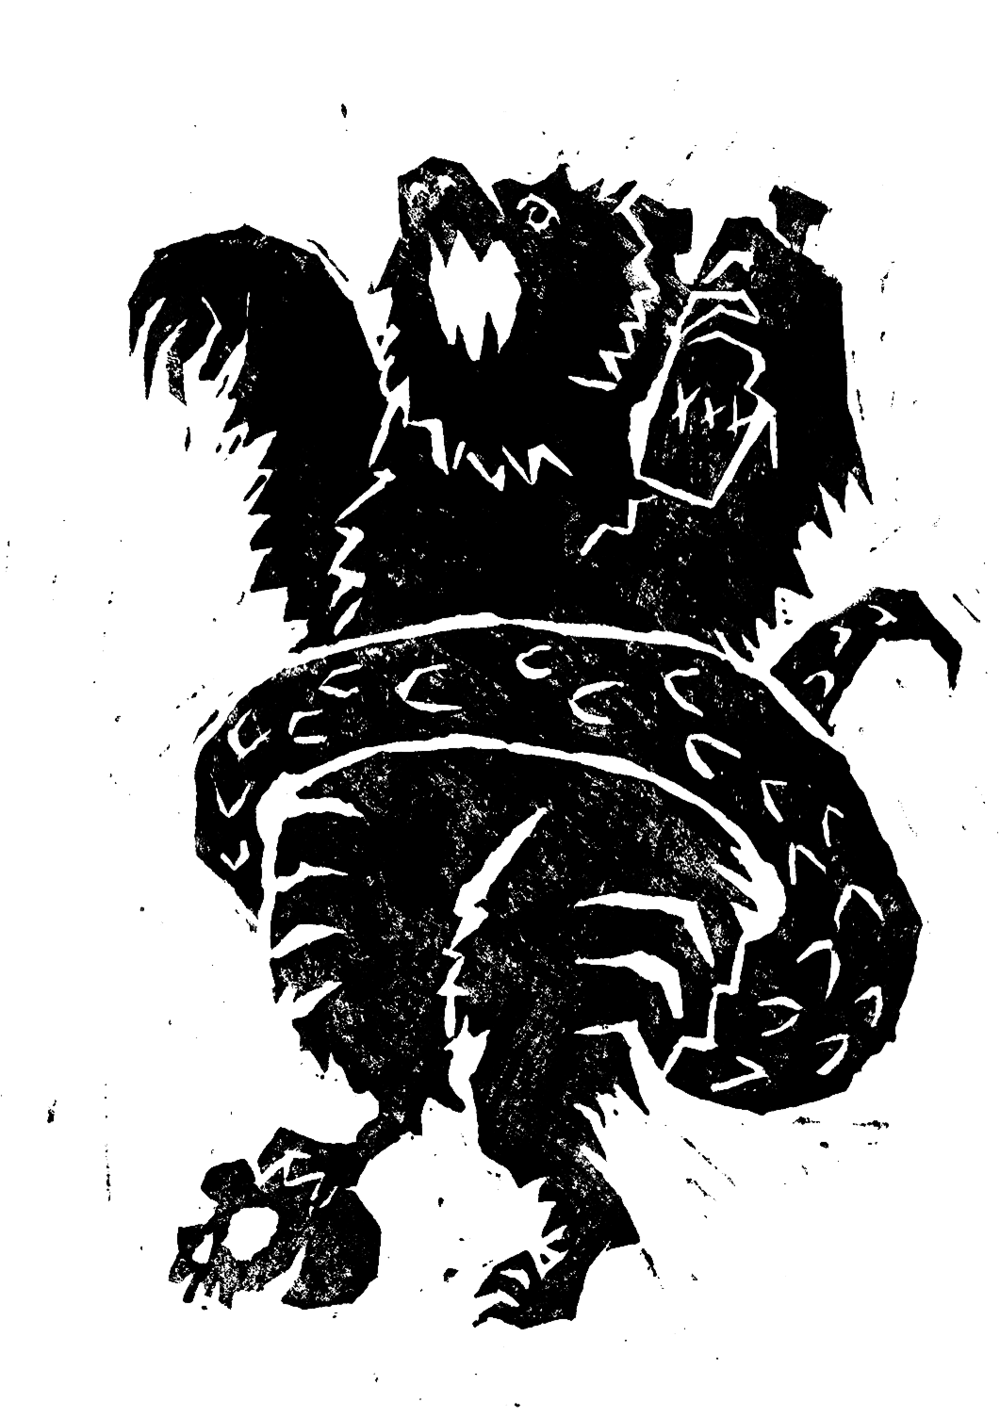 Lino cut illustration of a mythical creature